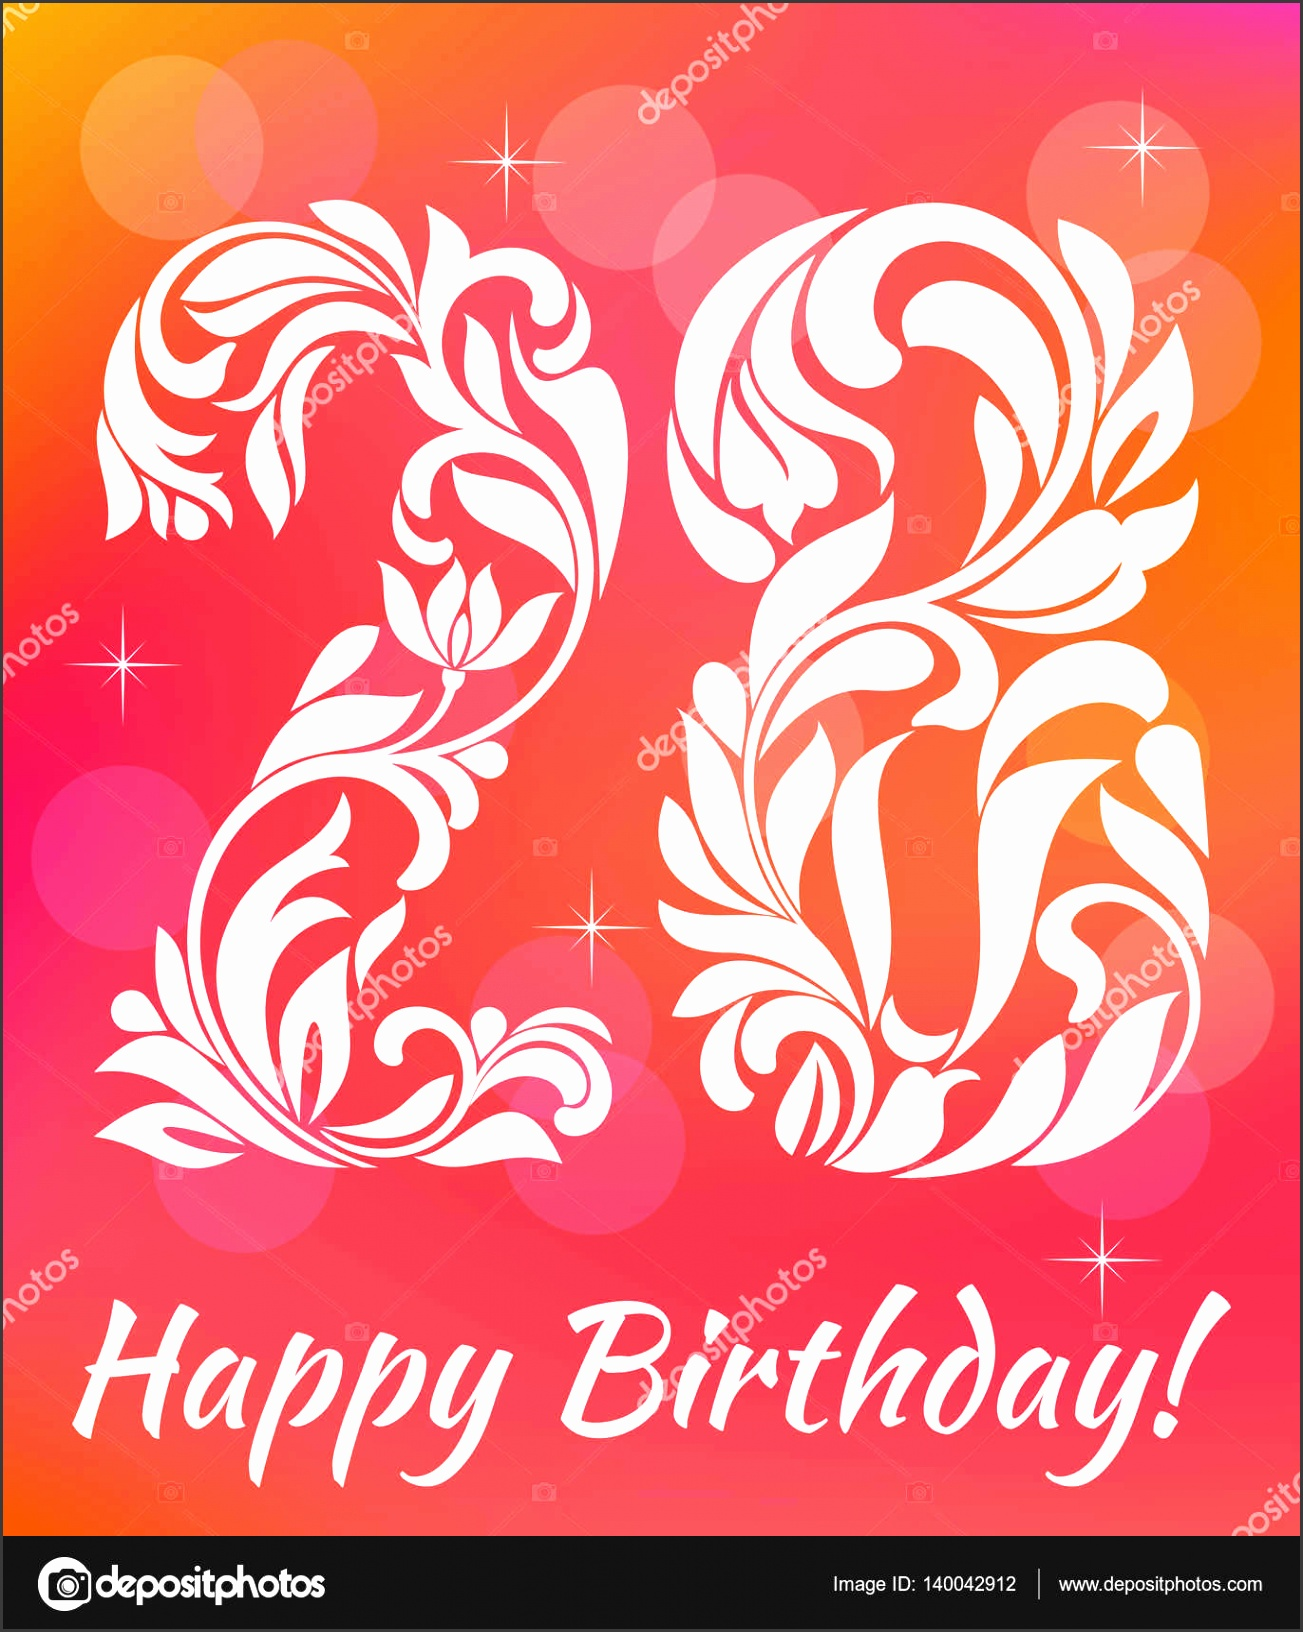 Bright Greeting card Template Celebrating 28 years birthday Decorative Font with swirls and floral